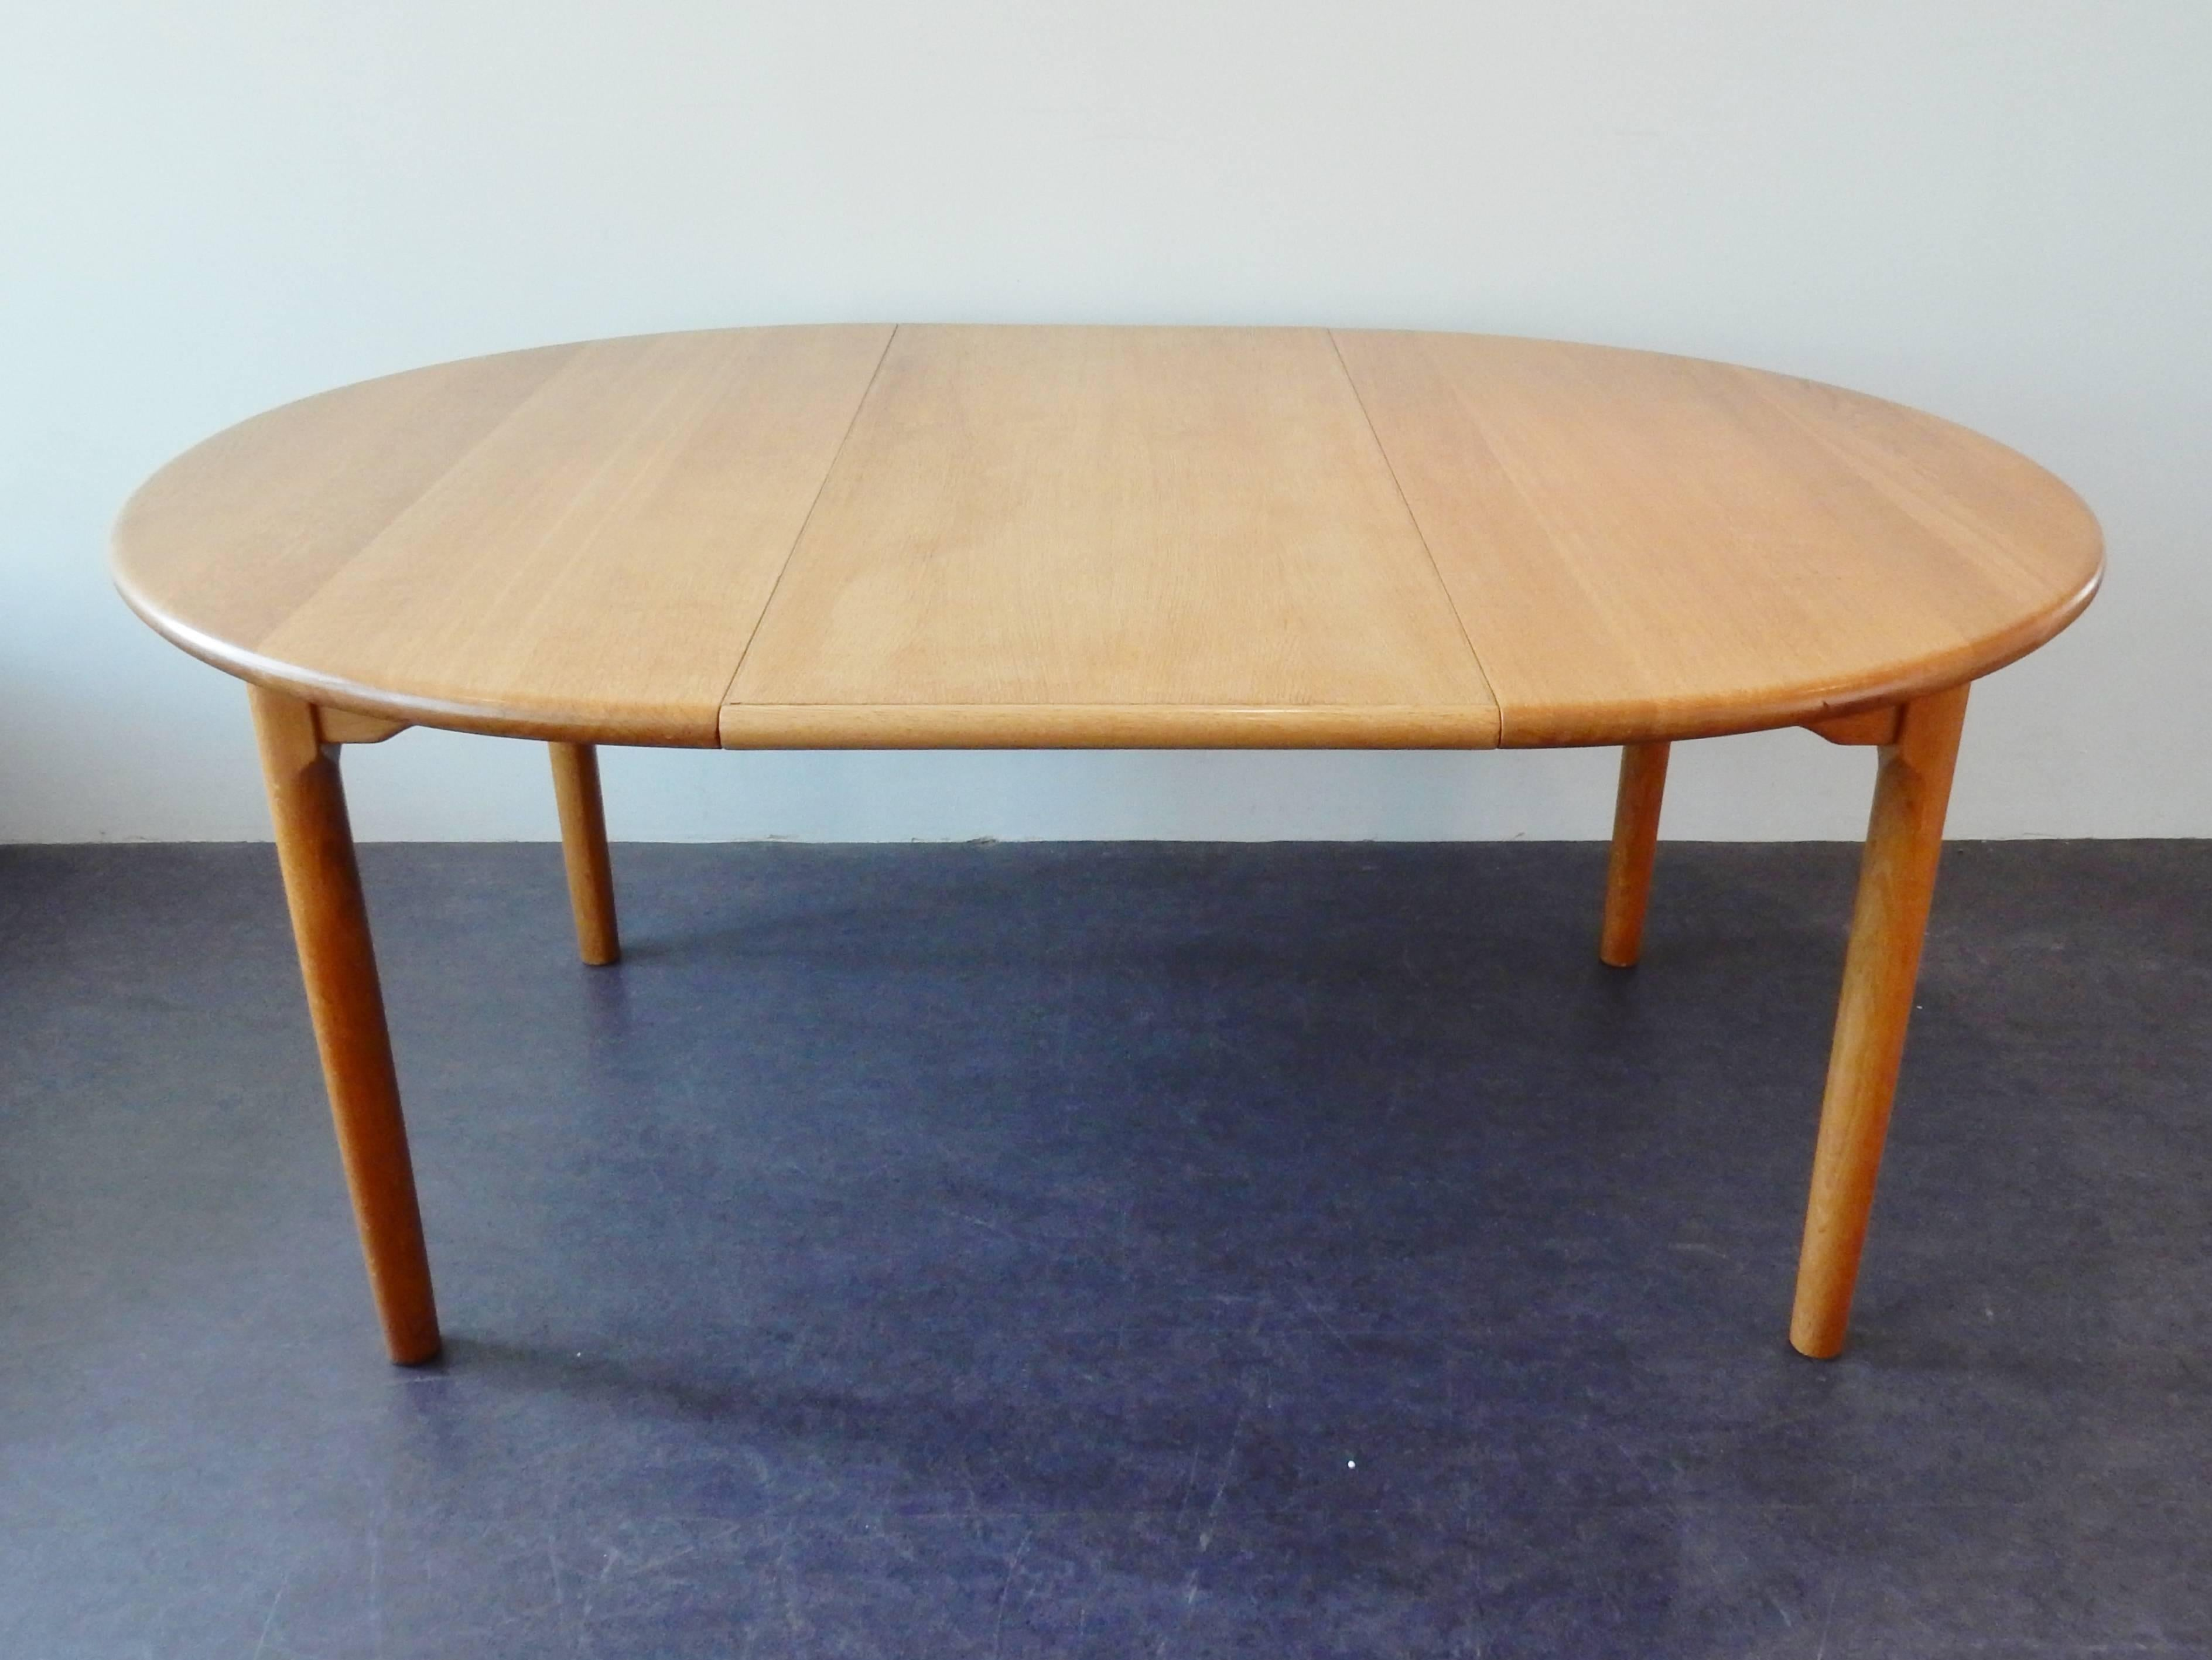 Round Extendable Dining Table In Oak By Kp Mbler